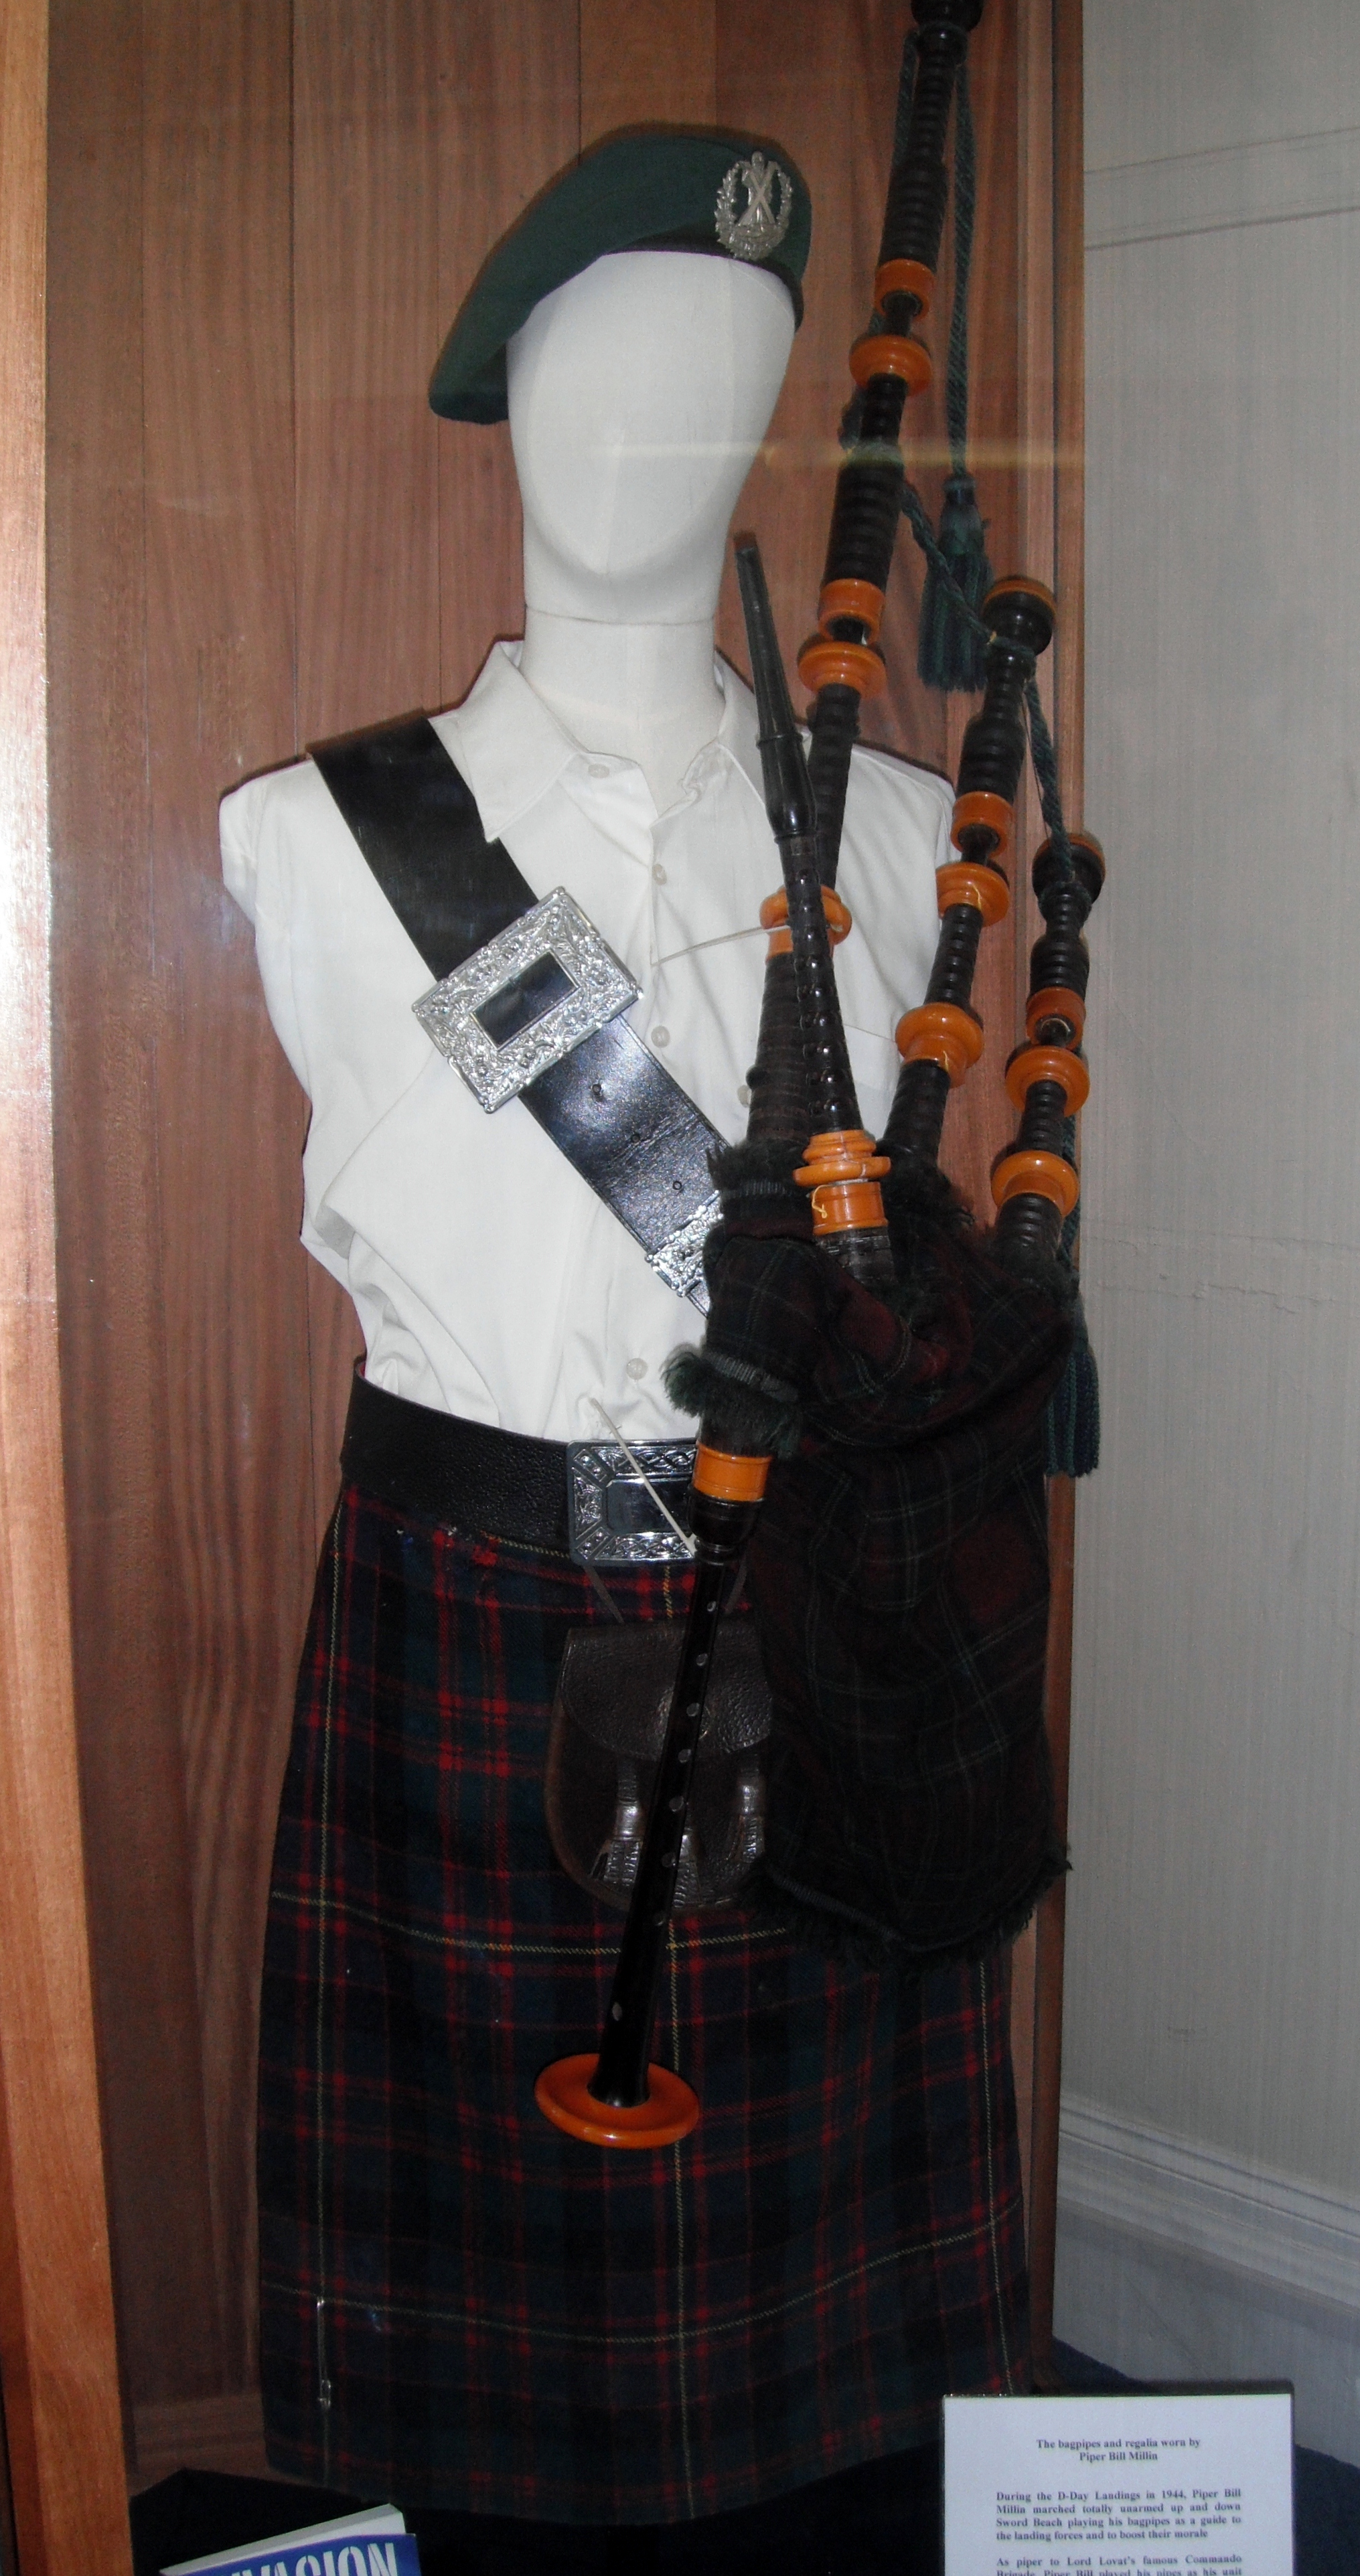 piper_bill_millin_s_d-day_bagpipes_dawlish_museum.jpg